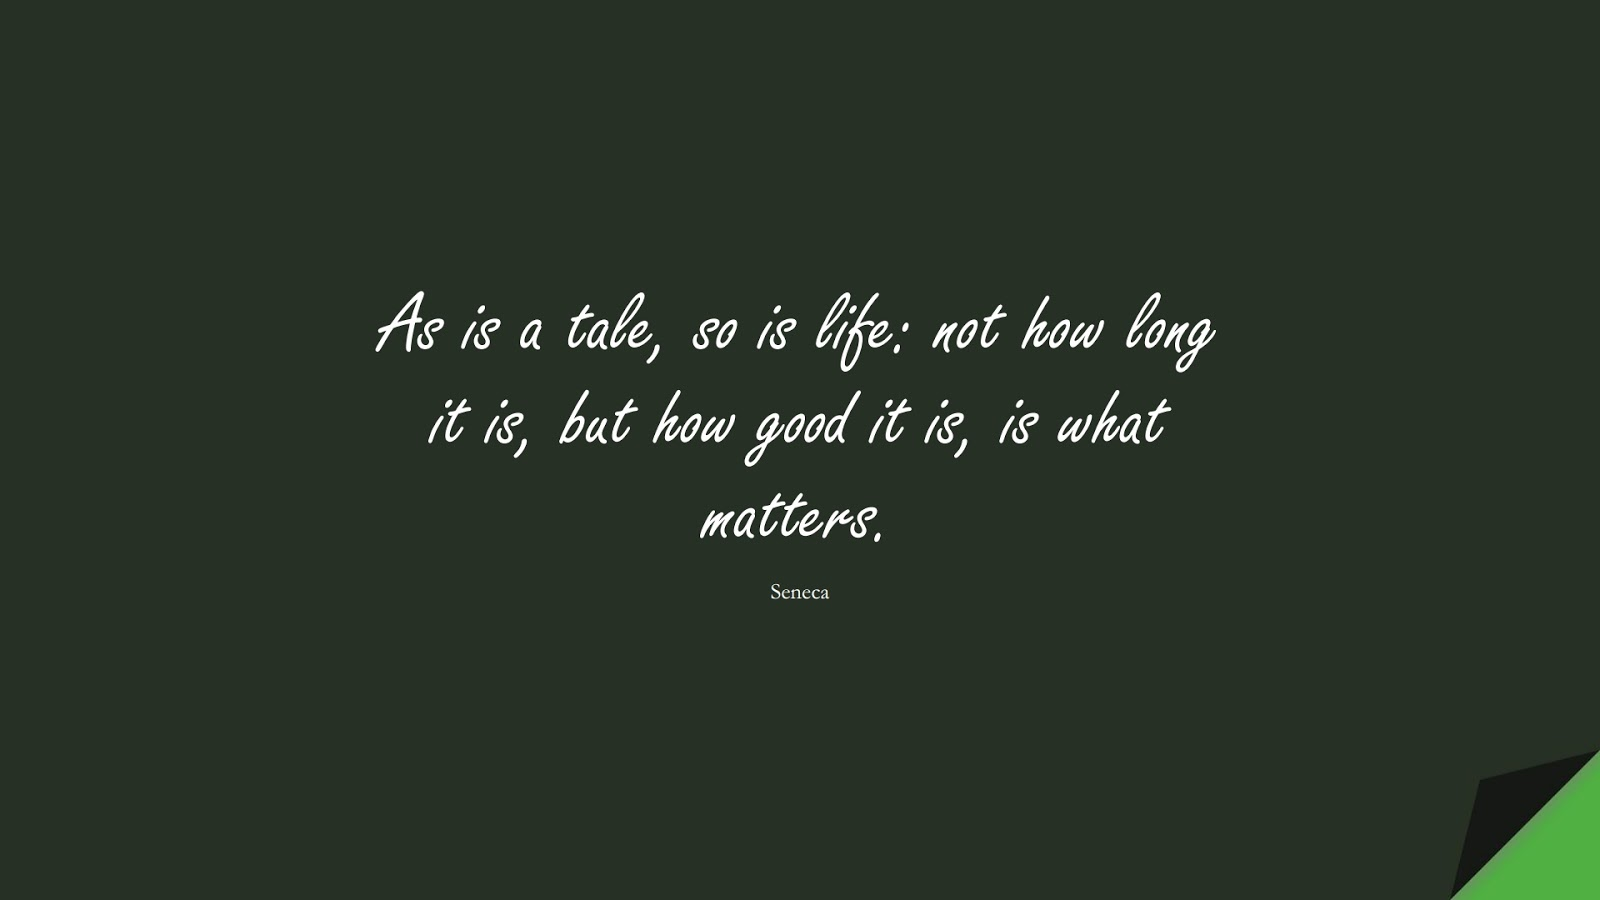 As is a tale, so is life: not how long it is, but how good it is, is what matters. (Seneca);  #InspirationalQuotes